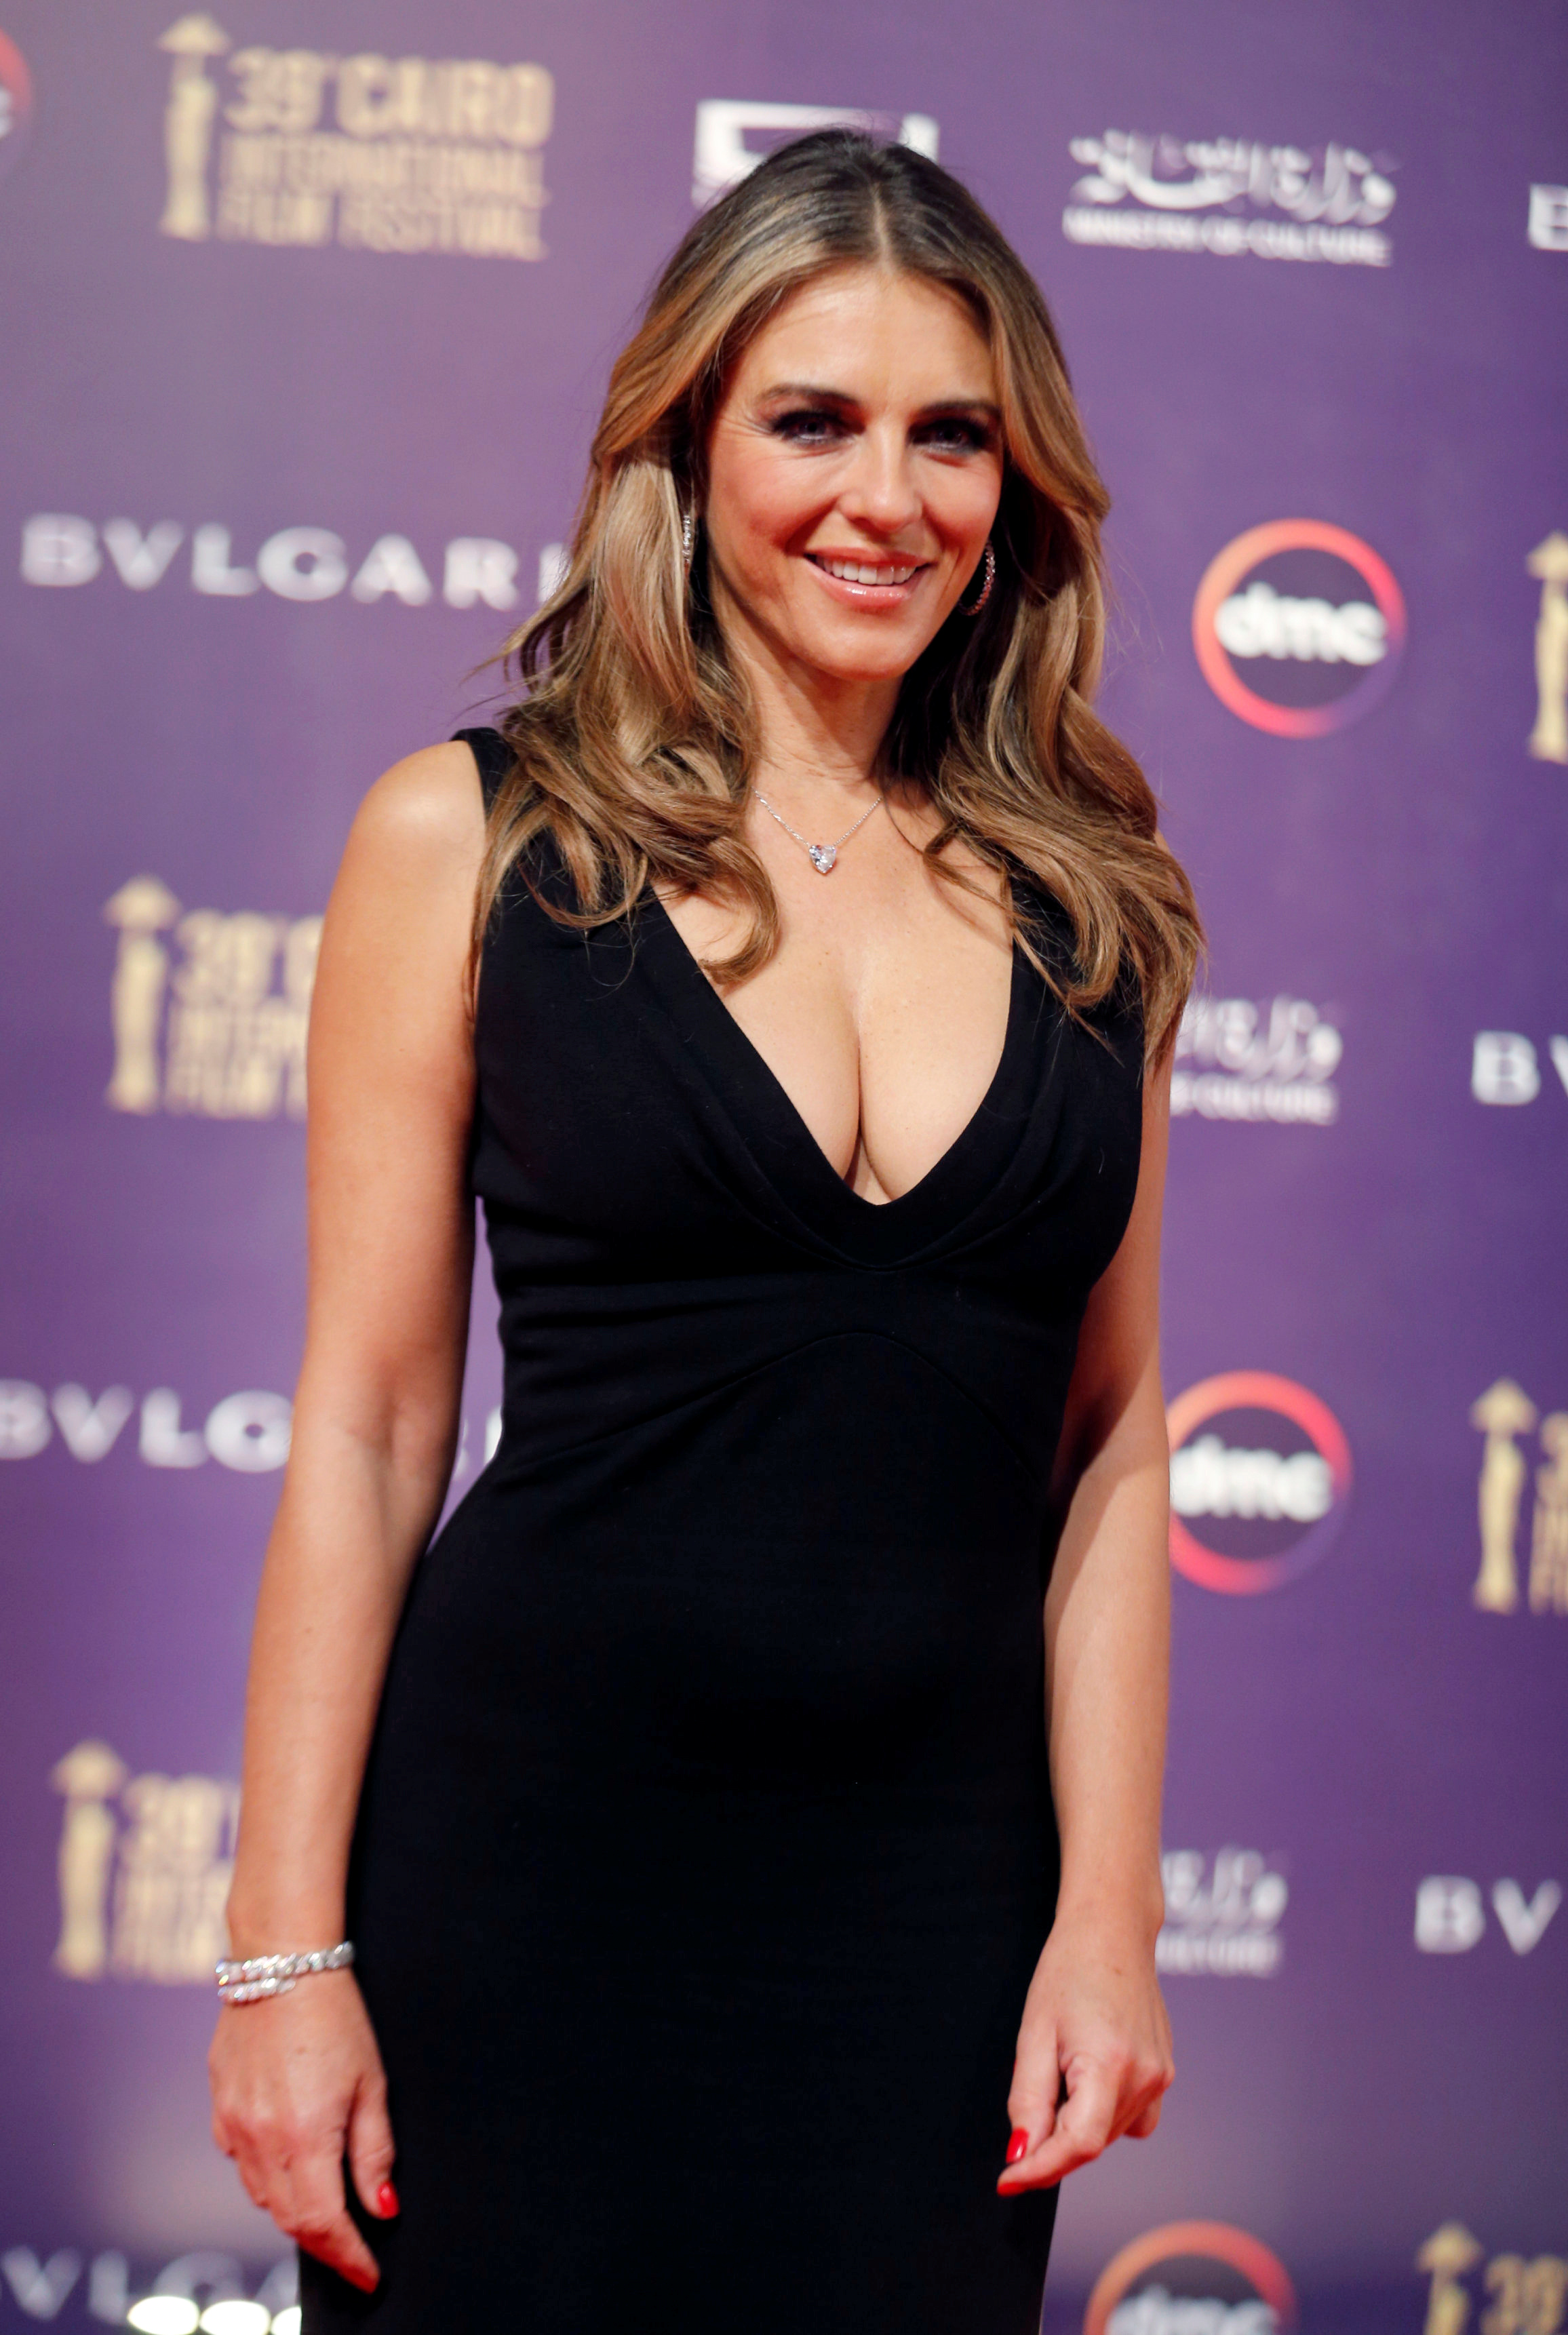 British actor Elizabeth Hurley poses during the opening of the 39th Cairo International Film Festival in Cairo, Egypt November 21, 2017. REUTERS/Amr Abdallah Dalsh